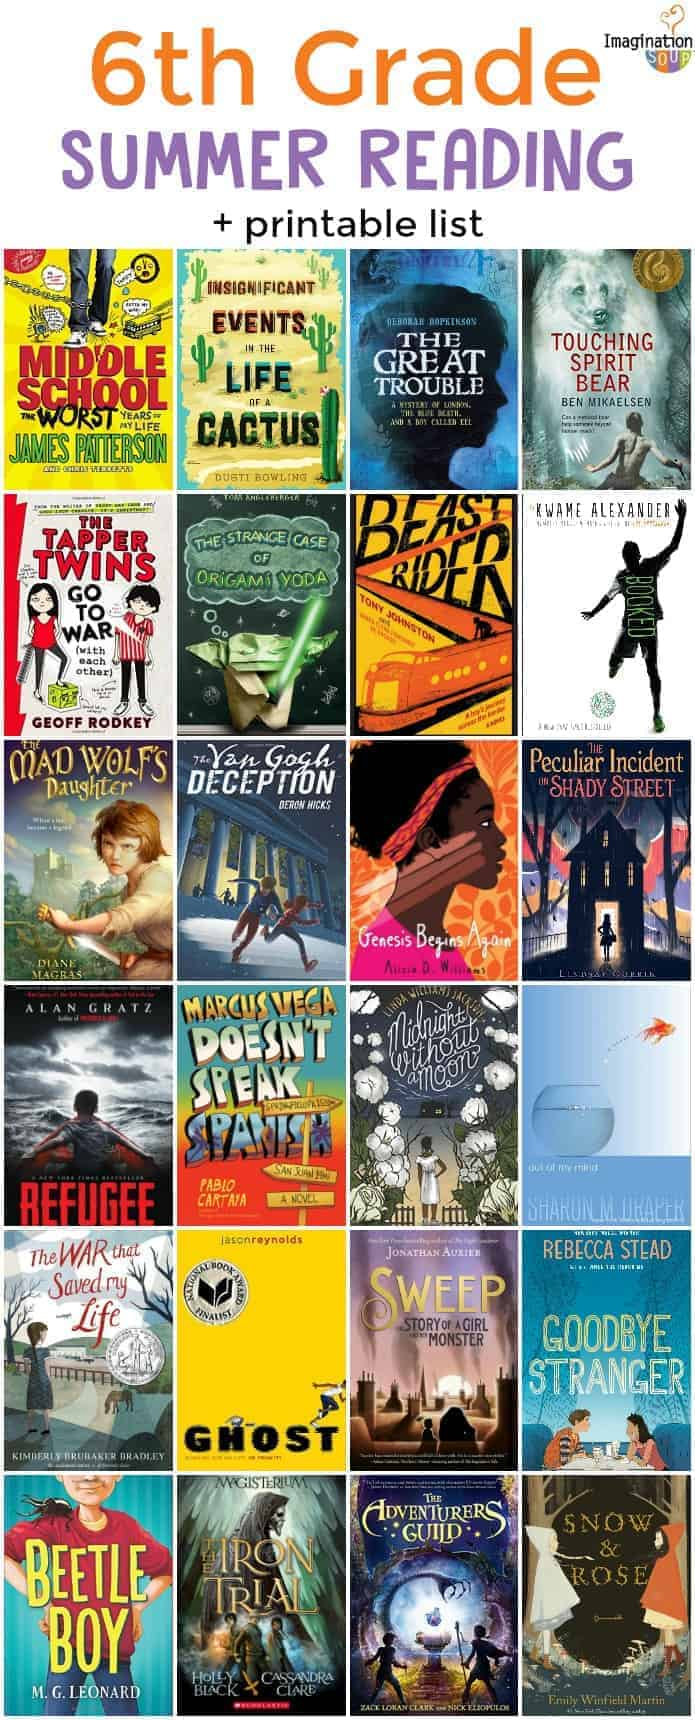 6th (sixth grade) summer reading list